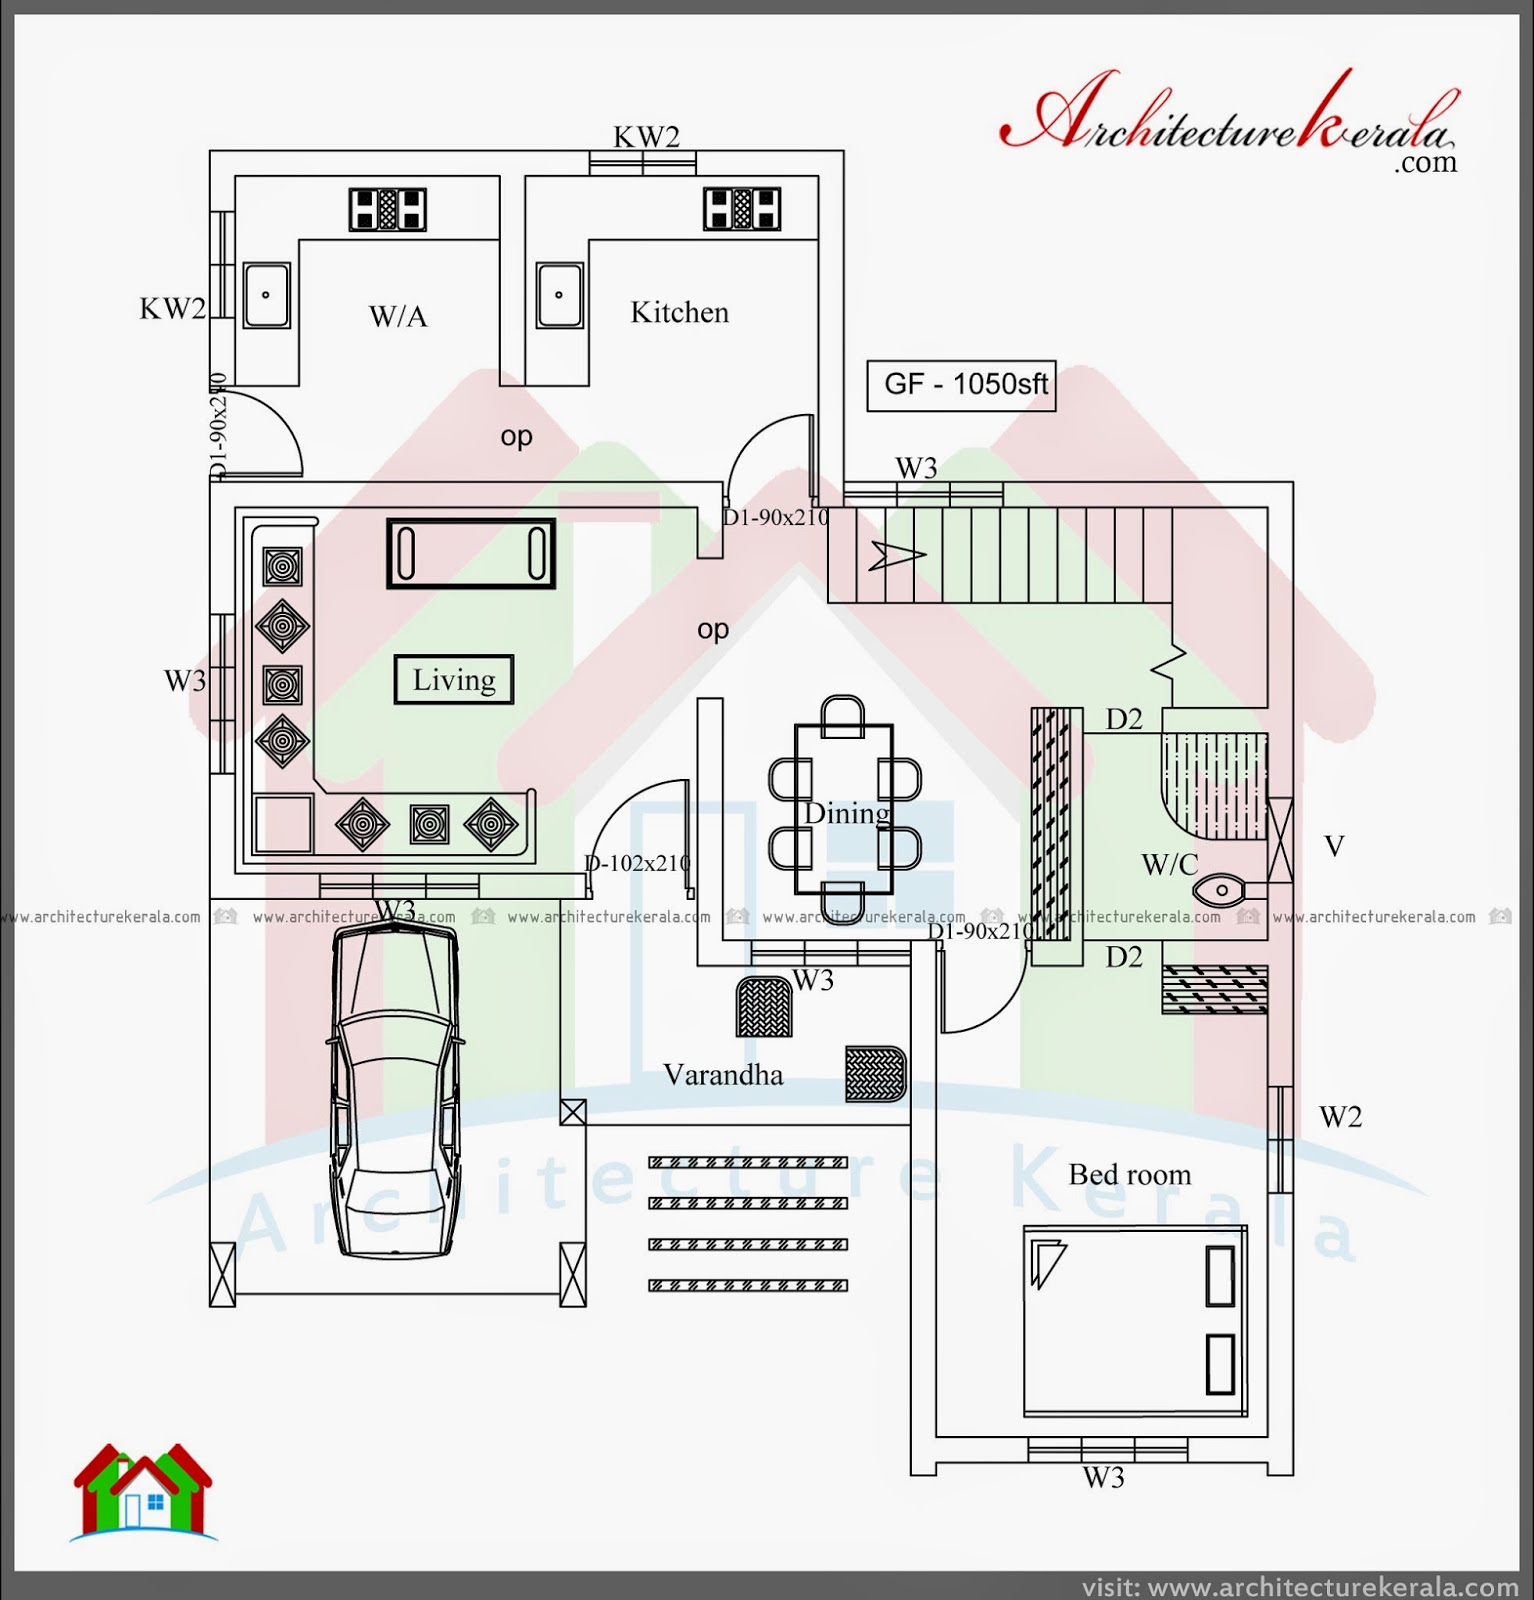 Three bedroom two storey house plan architecture kerala for 3 bedroom house layout